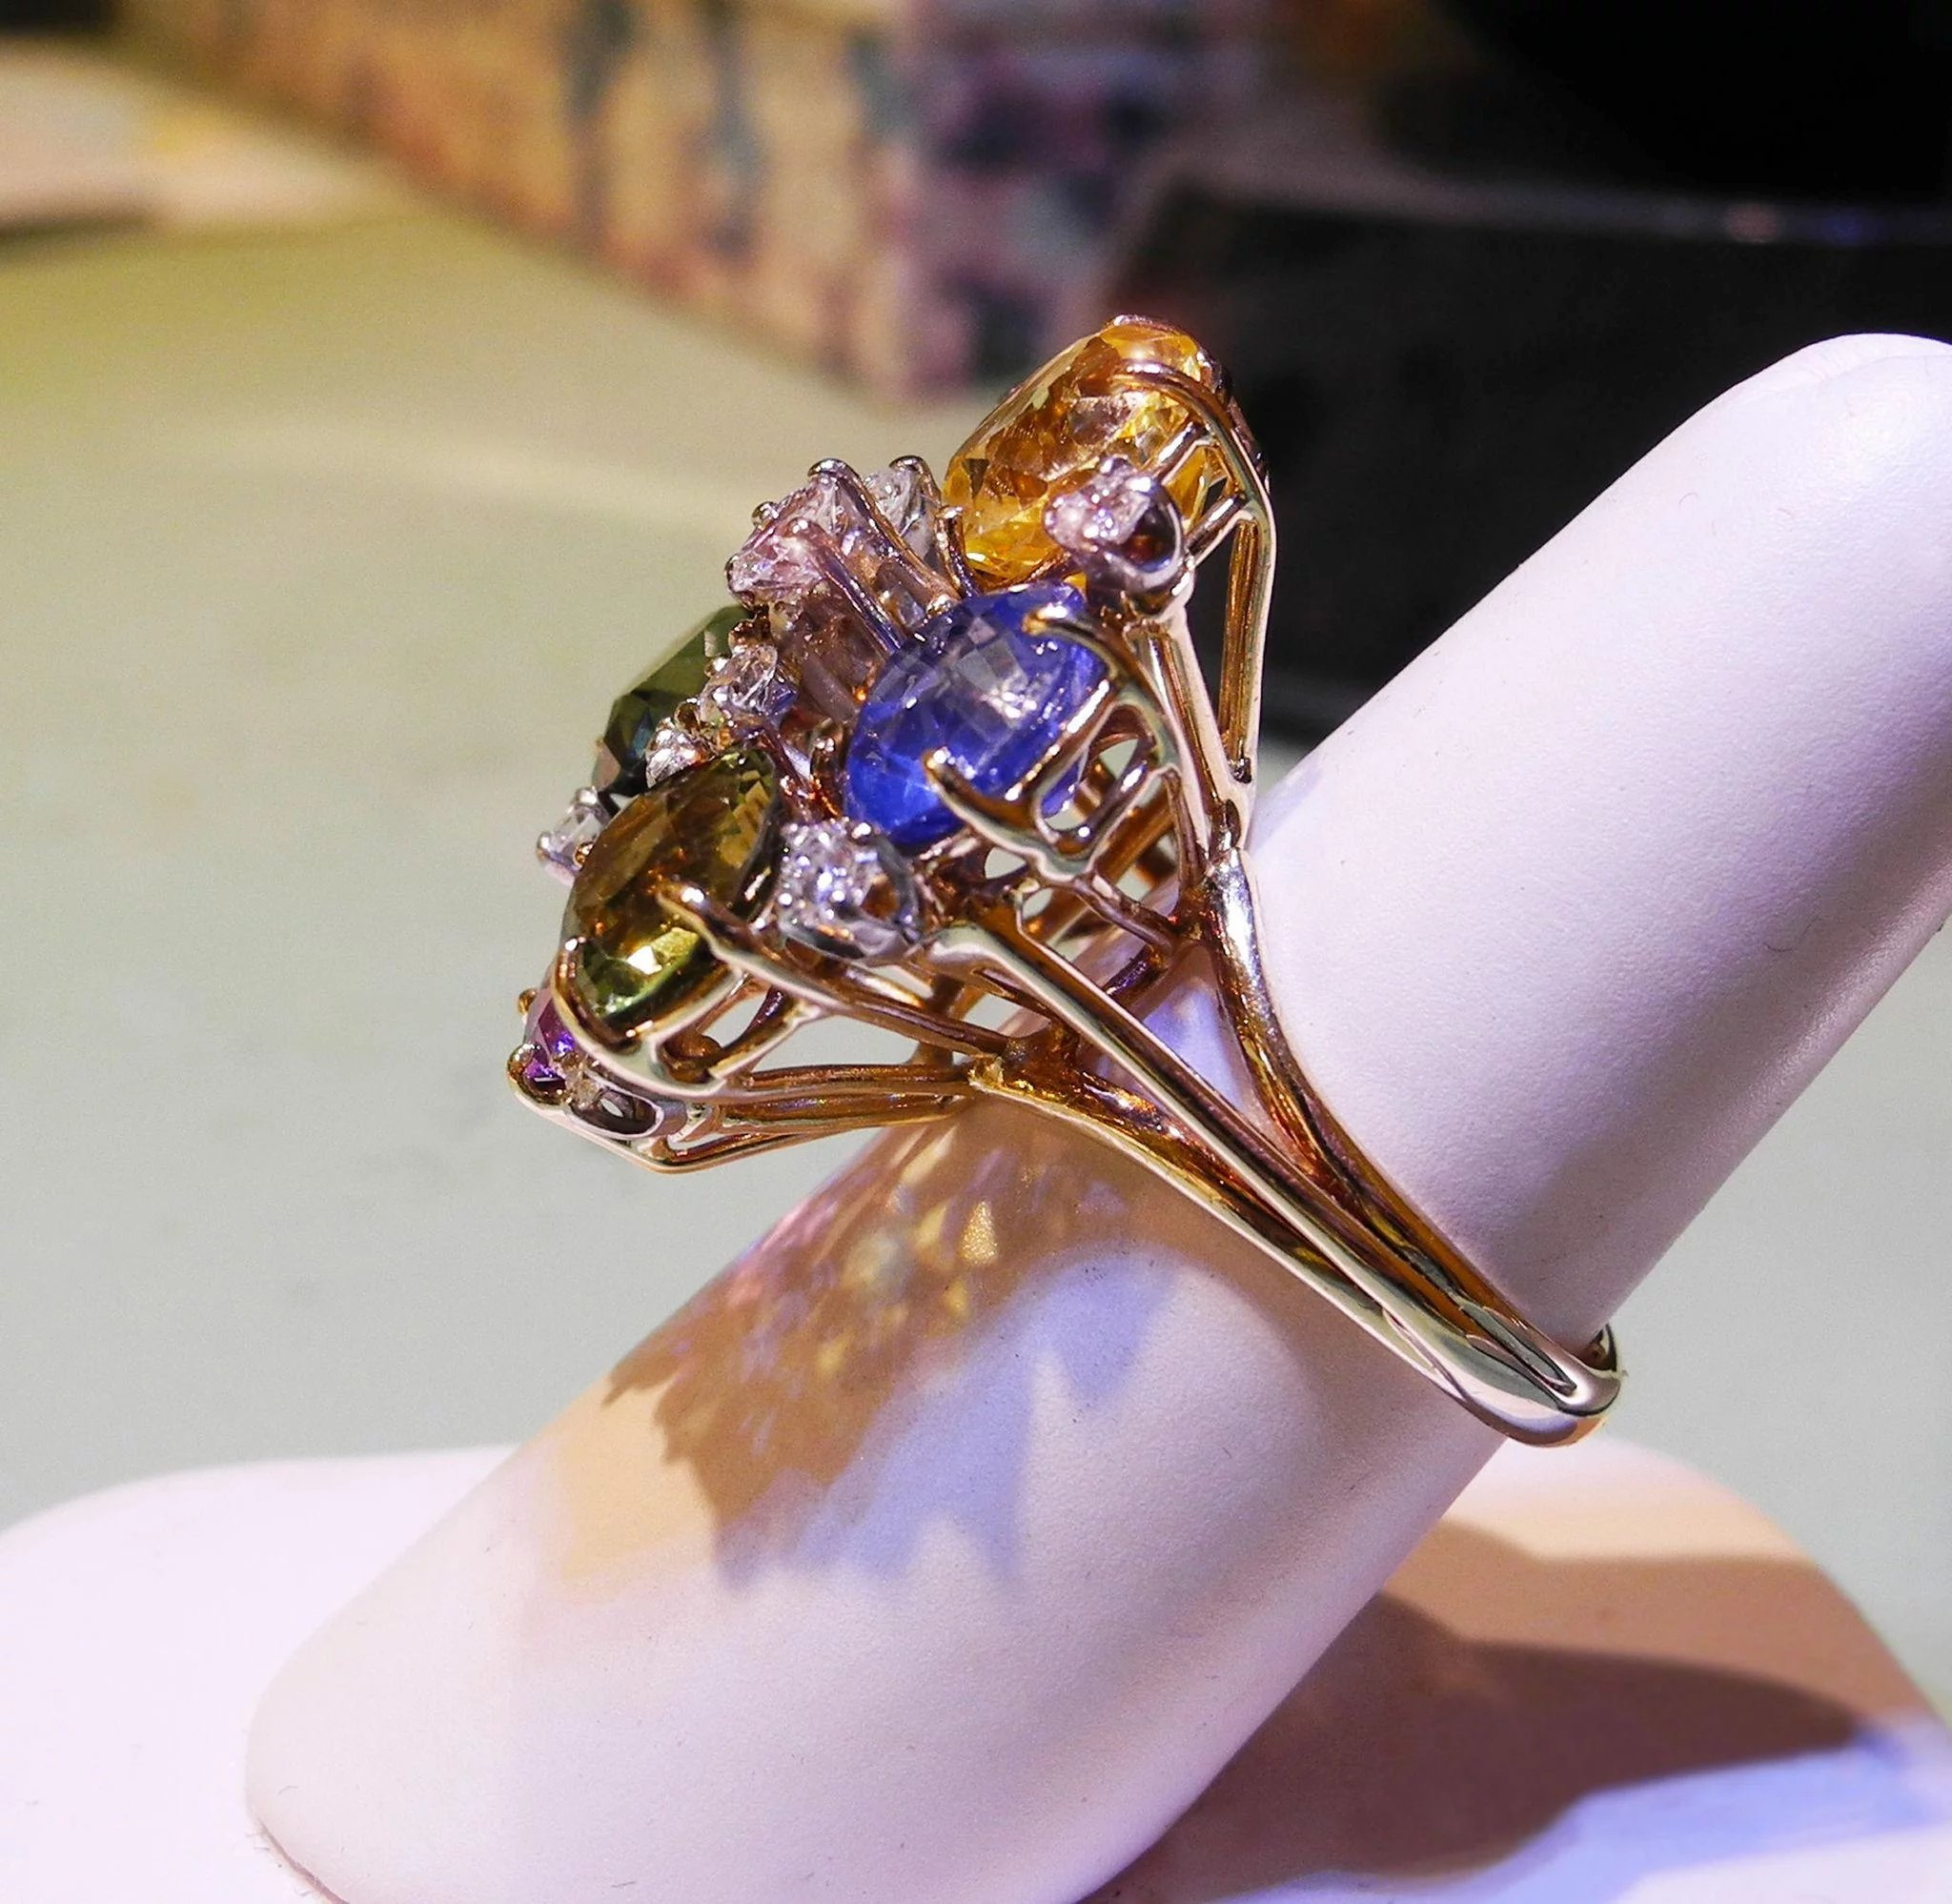 gold platinum bouquet mcclelland rings sapphire colored ring engagement diamond mcteigue flora